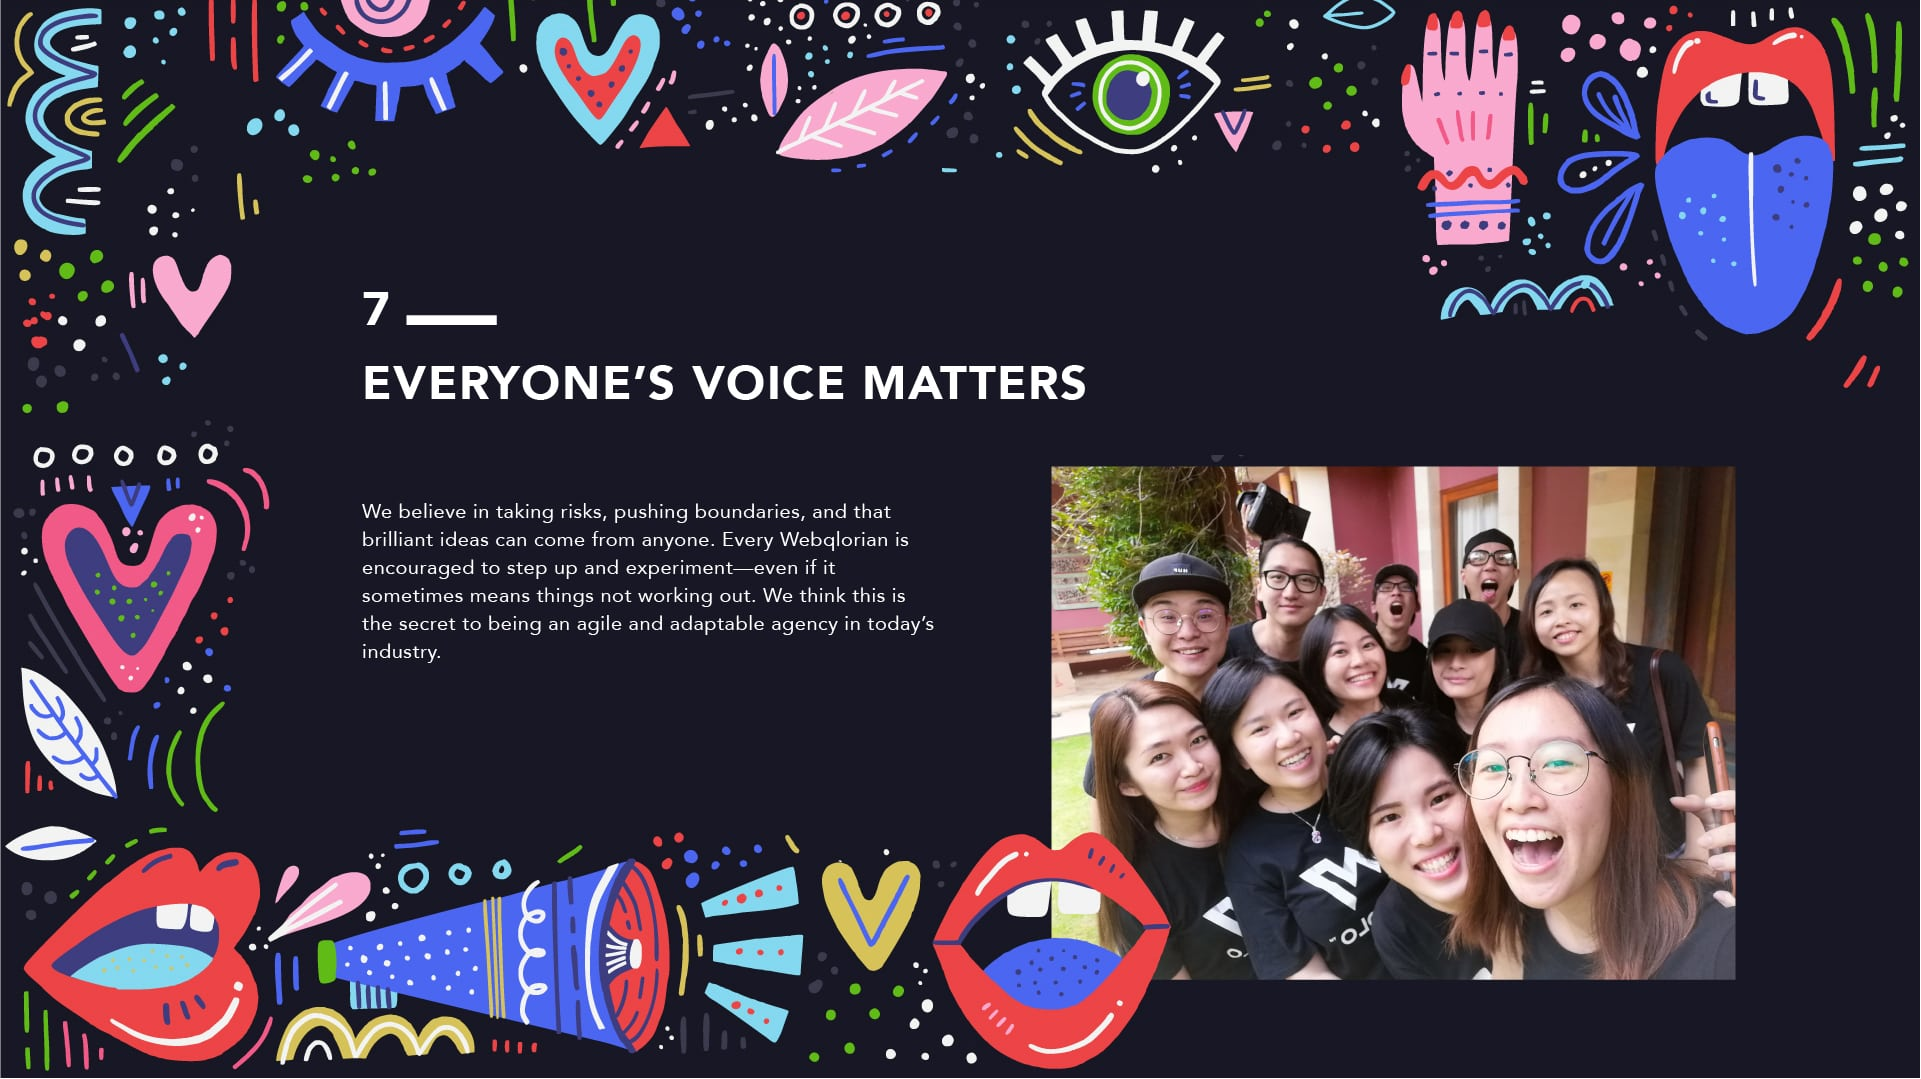 Everyone's Voice Matters